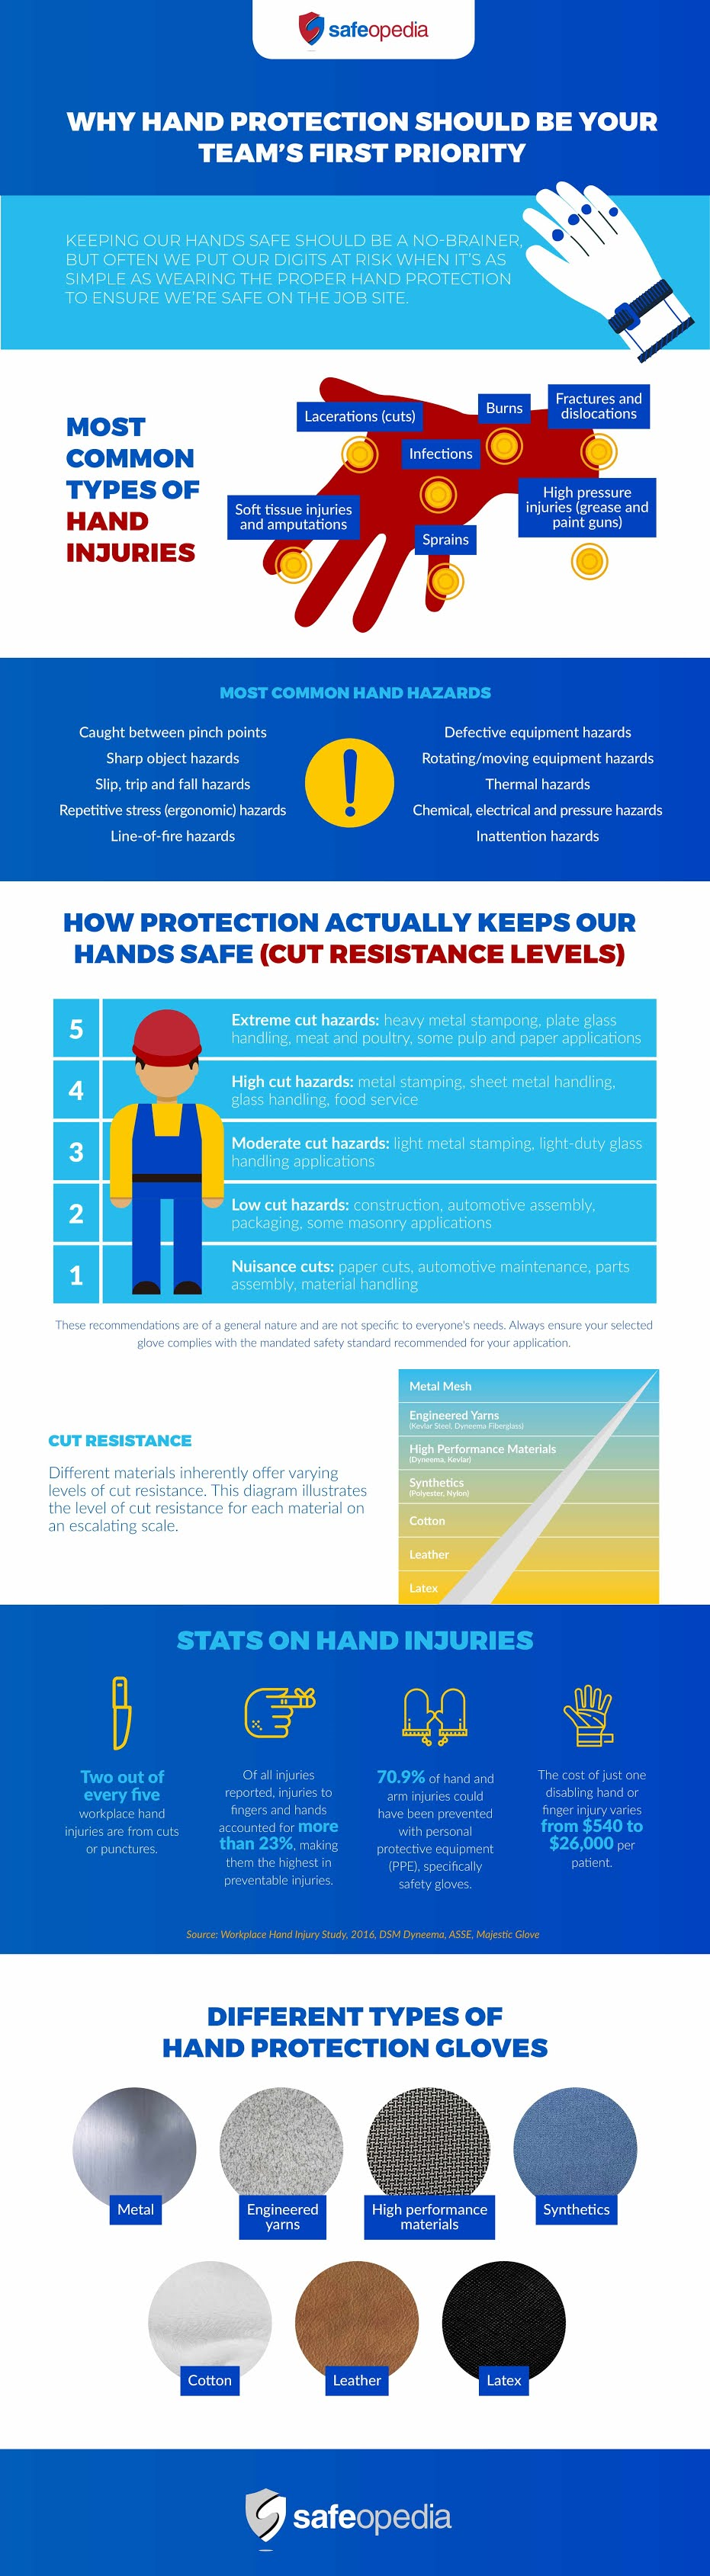 Why Hand Protection Should Be Your Team's First Priority #infographic #Safety #Hand Protection #infographics #Hand Injuries #Hazards